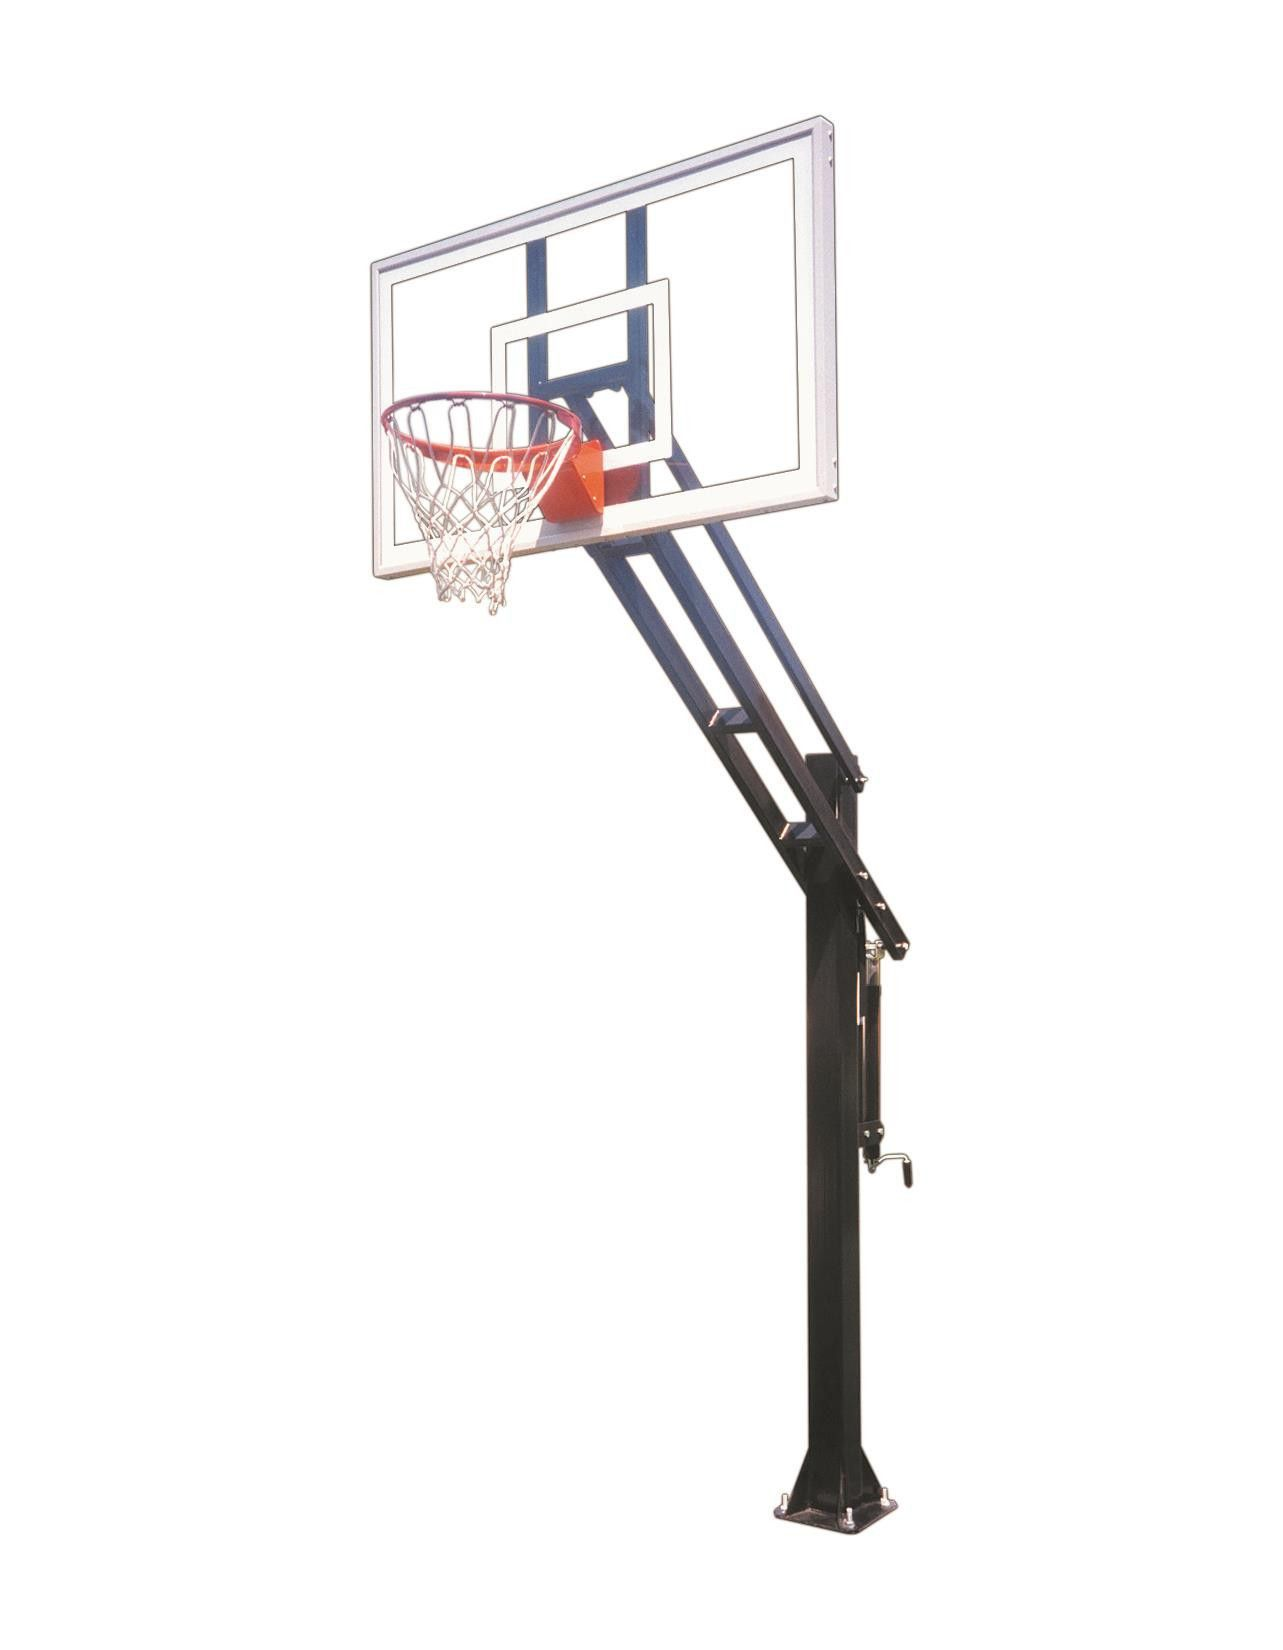 First Team Force Pro In Ground Outdoor Adjustable Basketball Hoop 60 Inch Tempered Glass Adjustable Basketball Hoop One Team Basketball Hoop